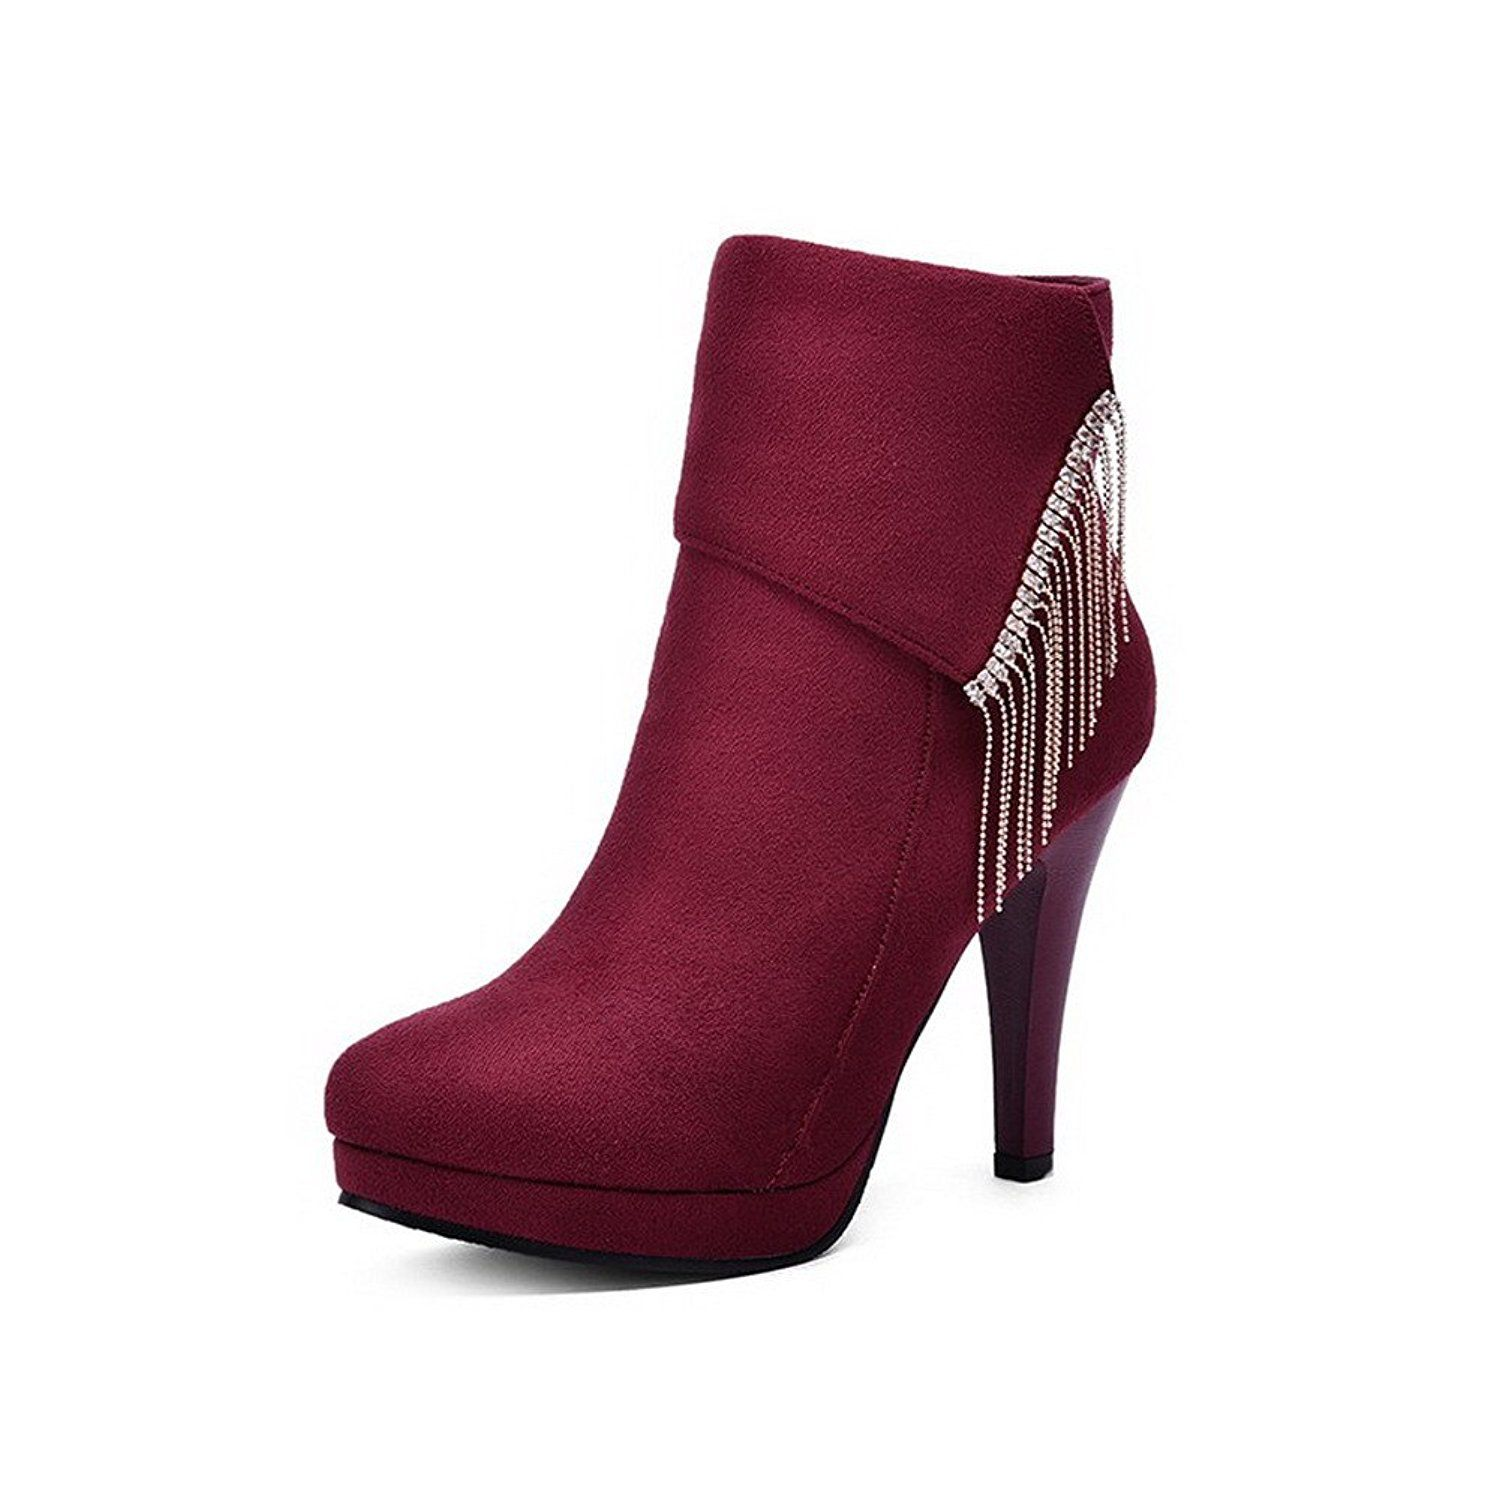 Women's Zipper Round Closed Toe High-Heels Imitated Suede Boots with Crystals